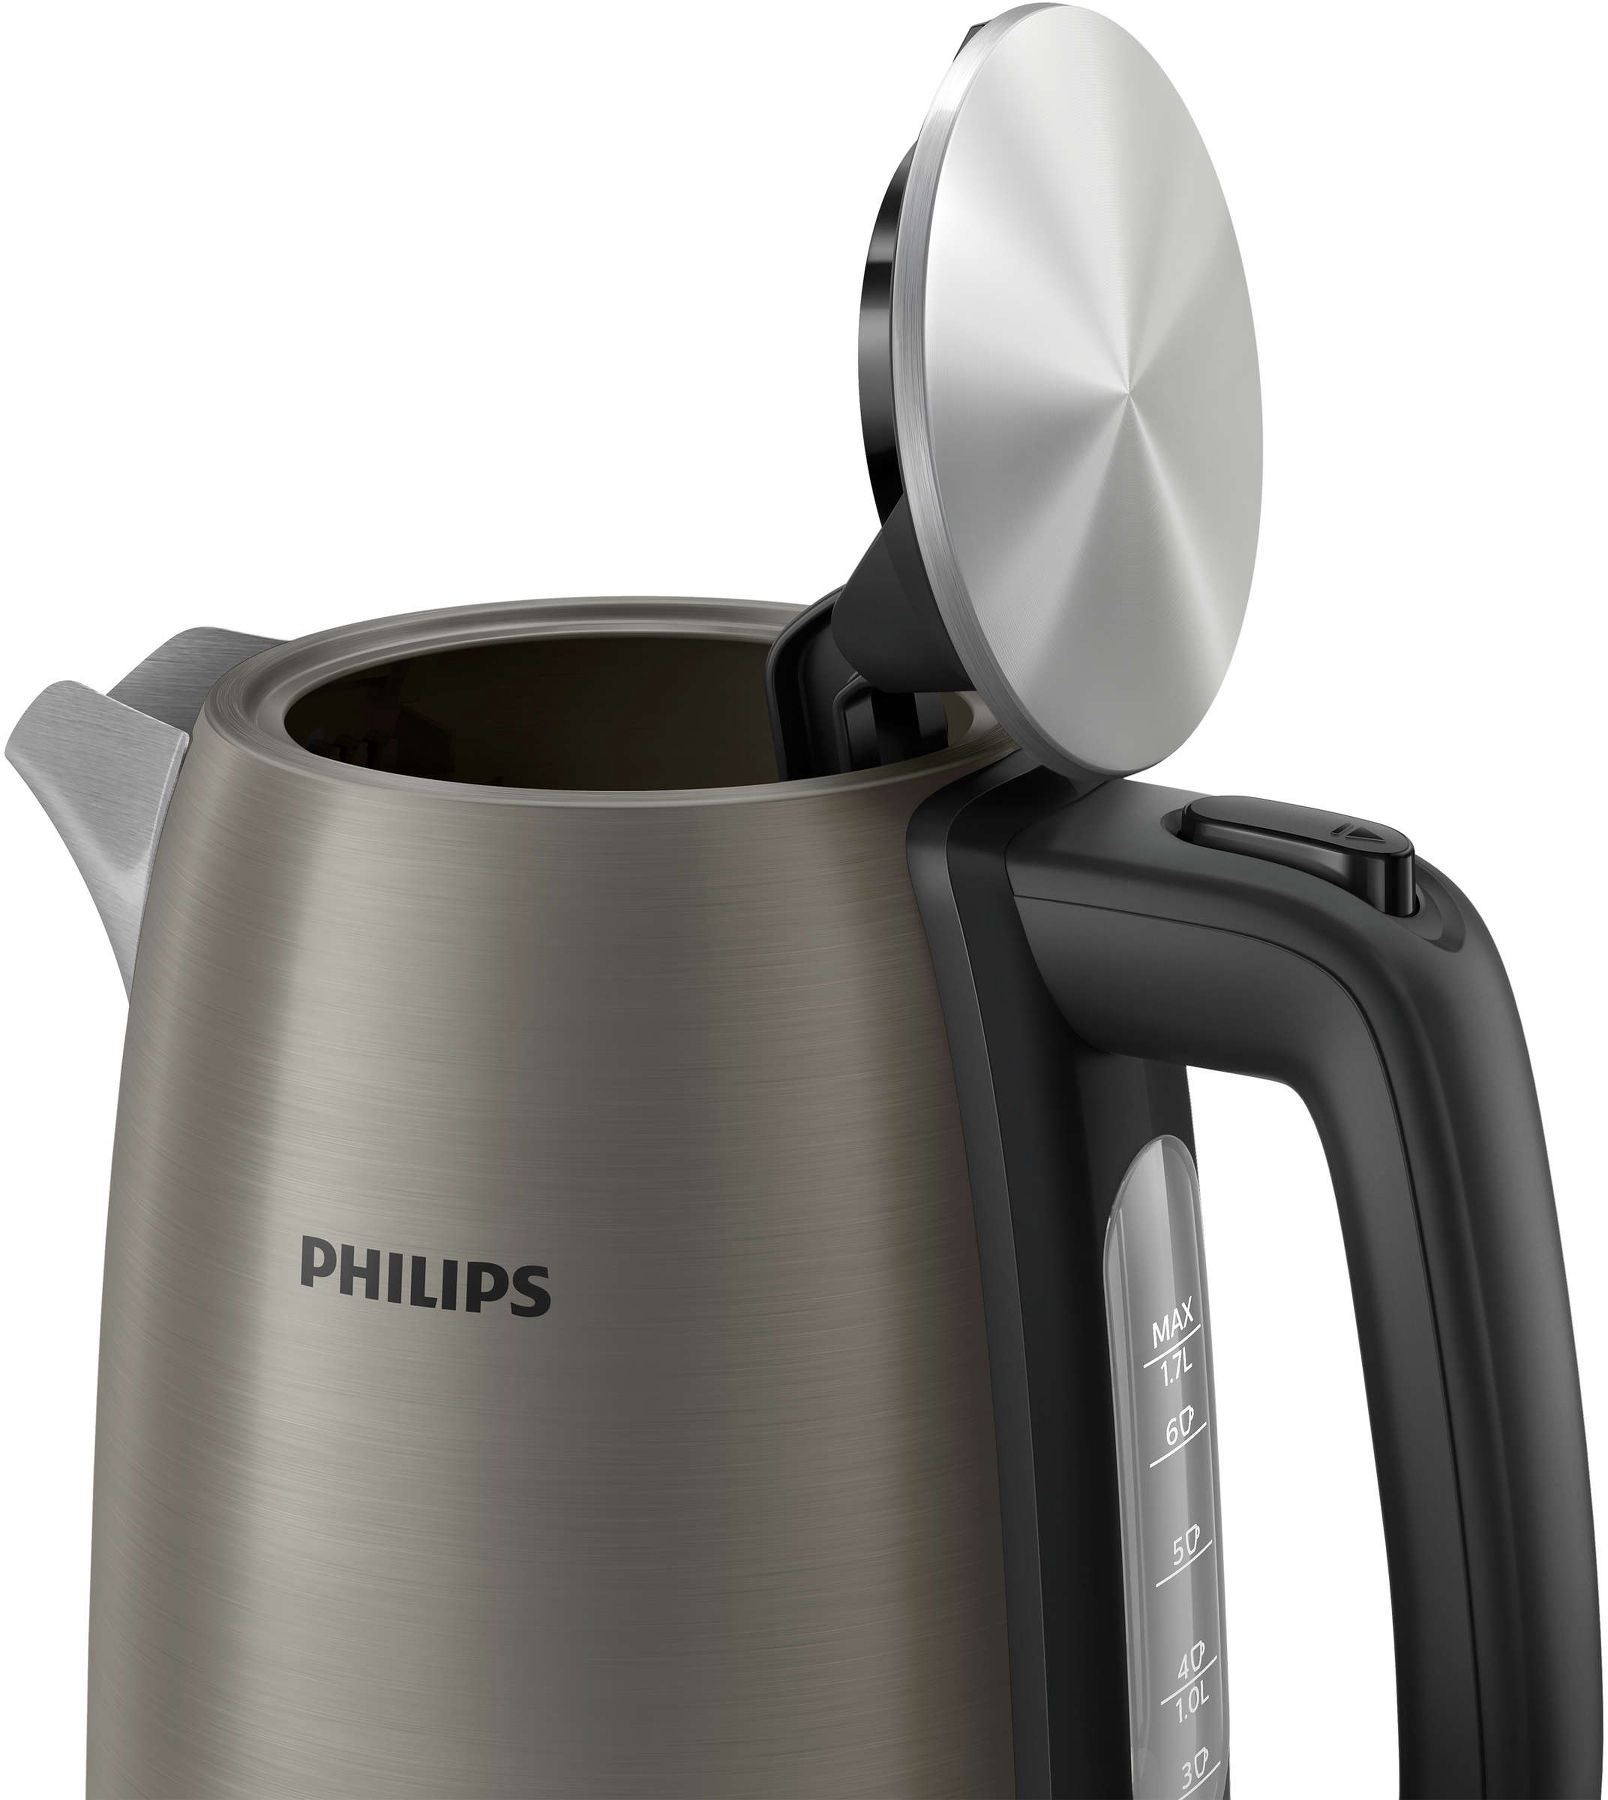 046fd404ab8 Philips Daily Collection HD9352/80 - Krauta.ee